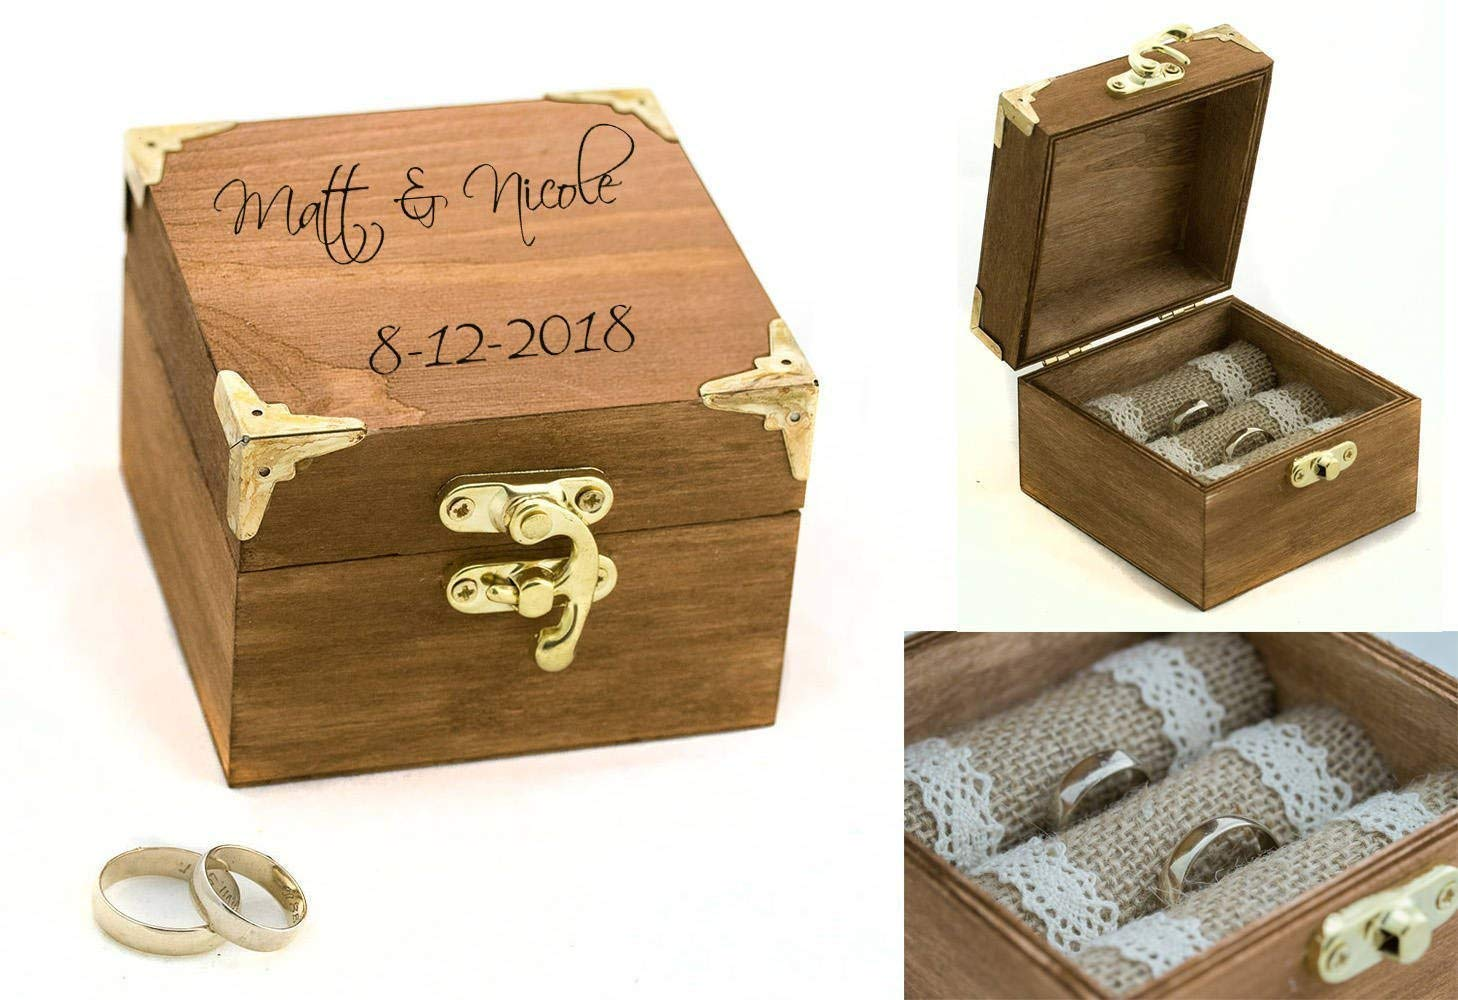 Engraved ring box, Custom ring bearer box, Wedding ring box, Personalized wedding box, Ring Bearer Pillow, Engagement box, Wedding Ring Box Holder, Proposal box, Wooden box